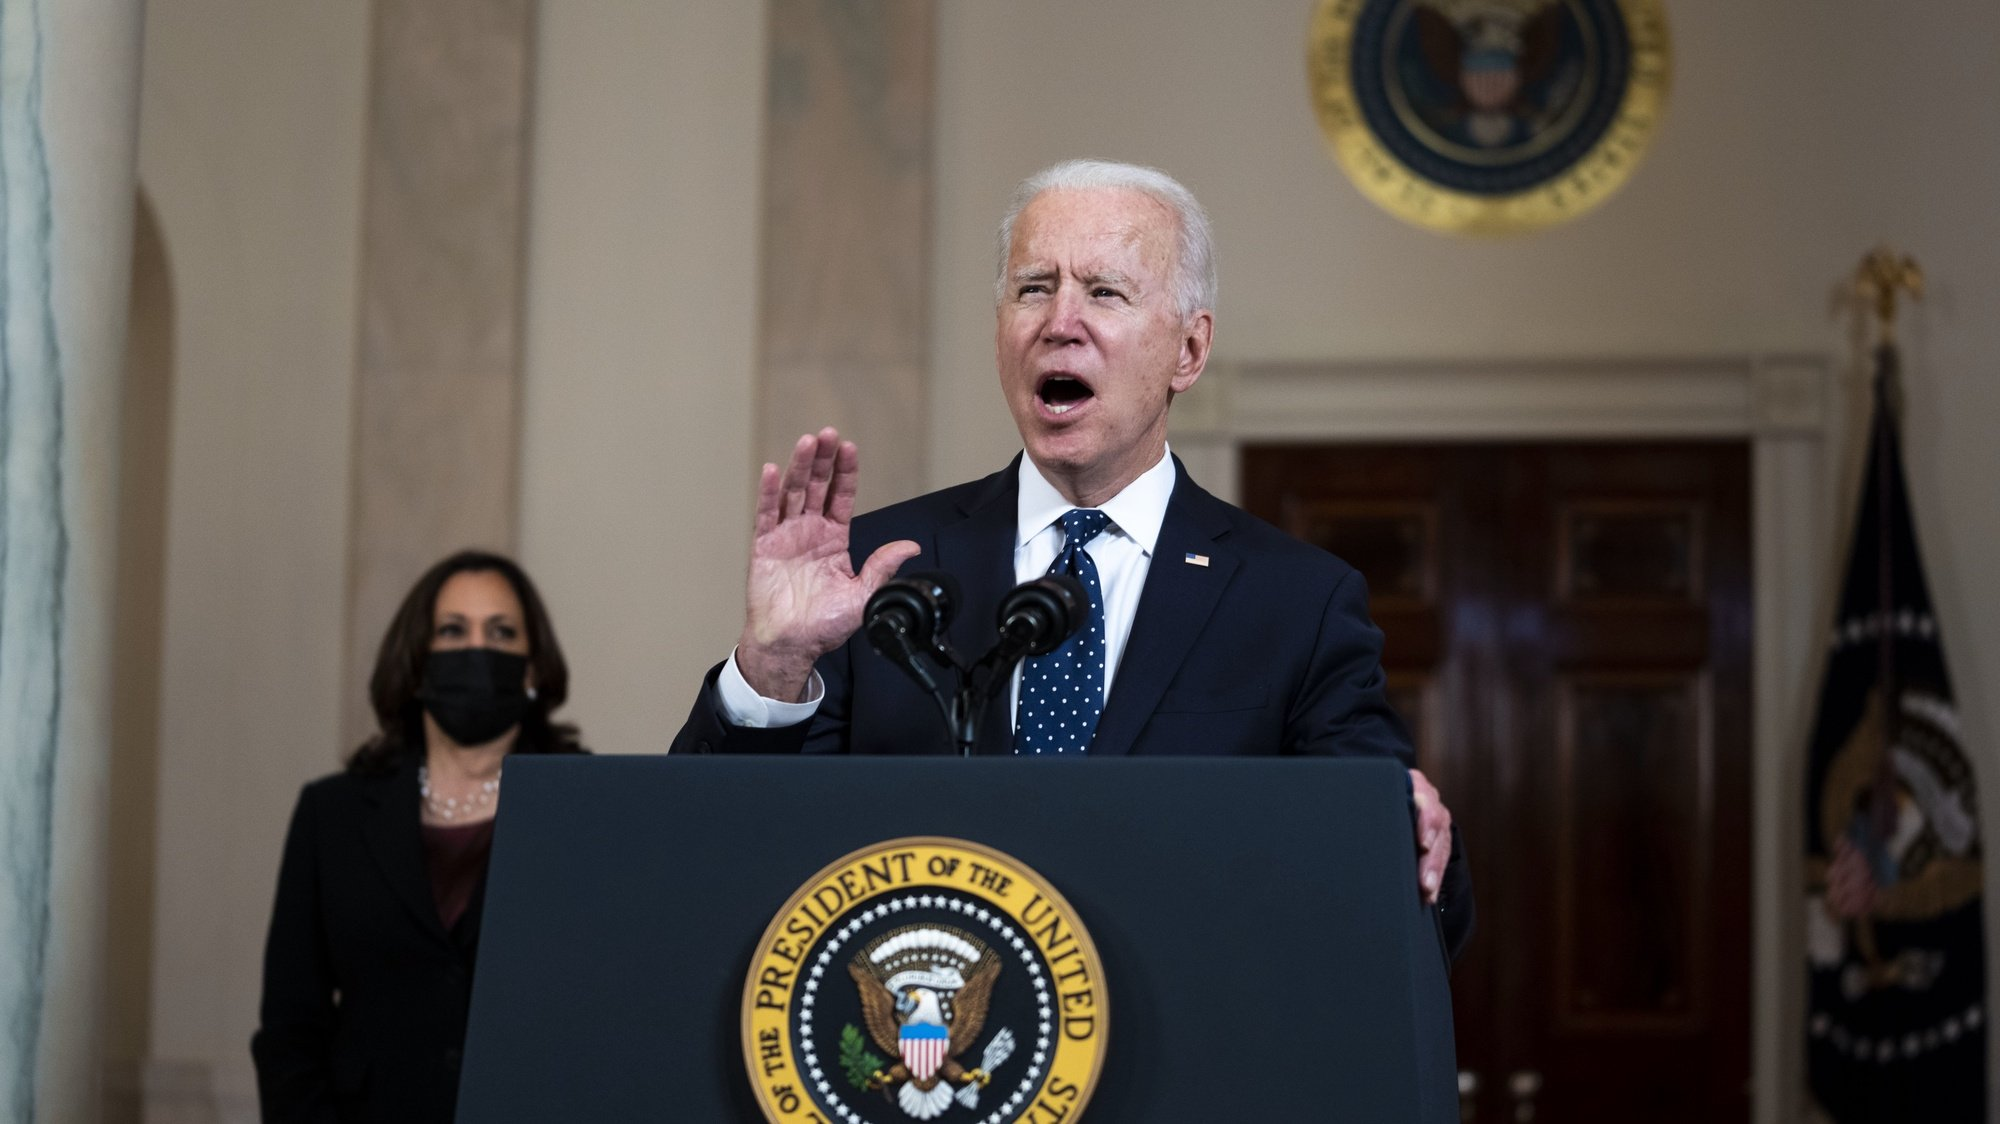 epa09148568 US President Joe Biden (R) delivers remarks as US Vice President Kamala Harris (L) looks on, after former Minneapolis Police Department Police Officer Derek Chauvin was found guilty on all counts in the death of George Floyd, at the White House in Washington, DC, USA, 20 April 2021.  EPA/Doug Mills / POOL